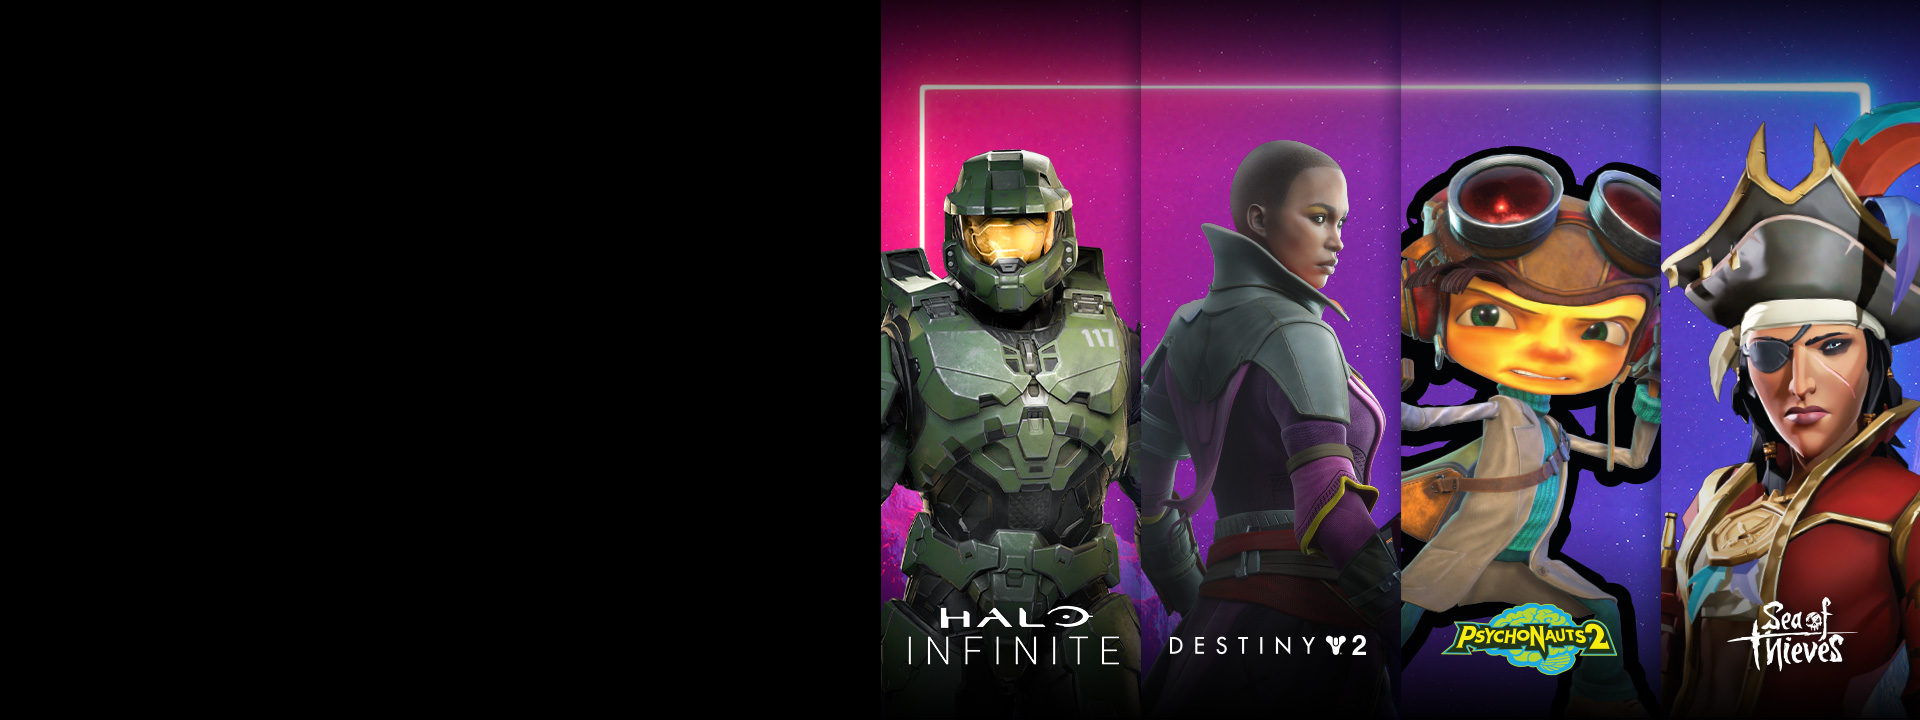 Lockup of characters from the exclusive partnership wallpapers: Master Chief in Halo Infinite, Ikora Rey in Destiny 2, Raz in Psychonauts 2, and Lesedi Singh in Sea of Thieves